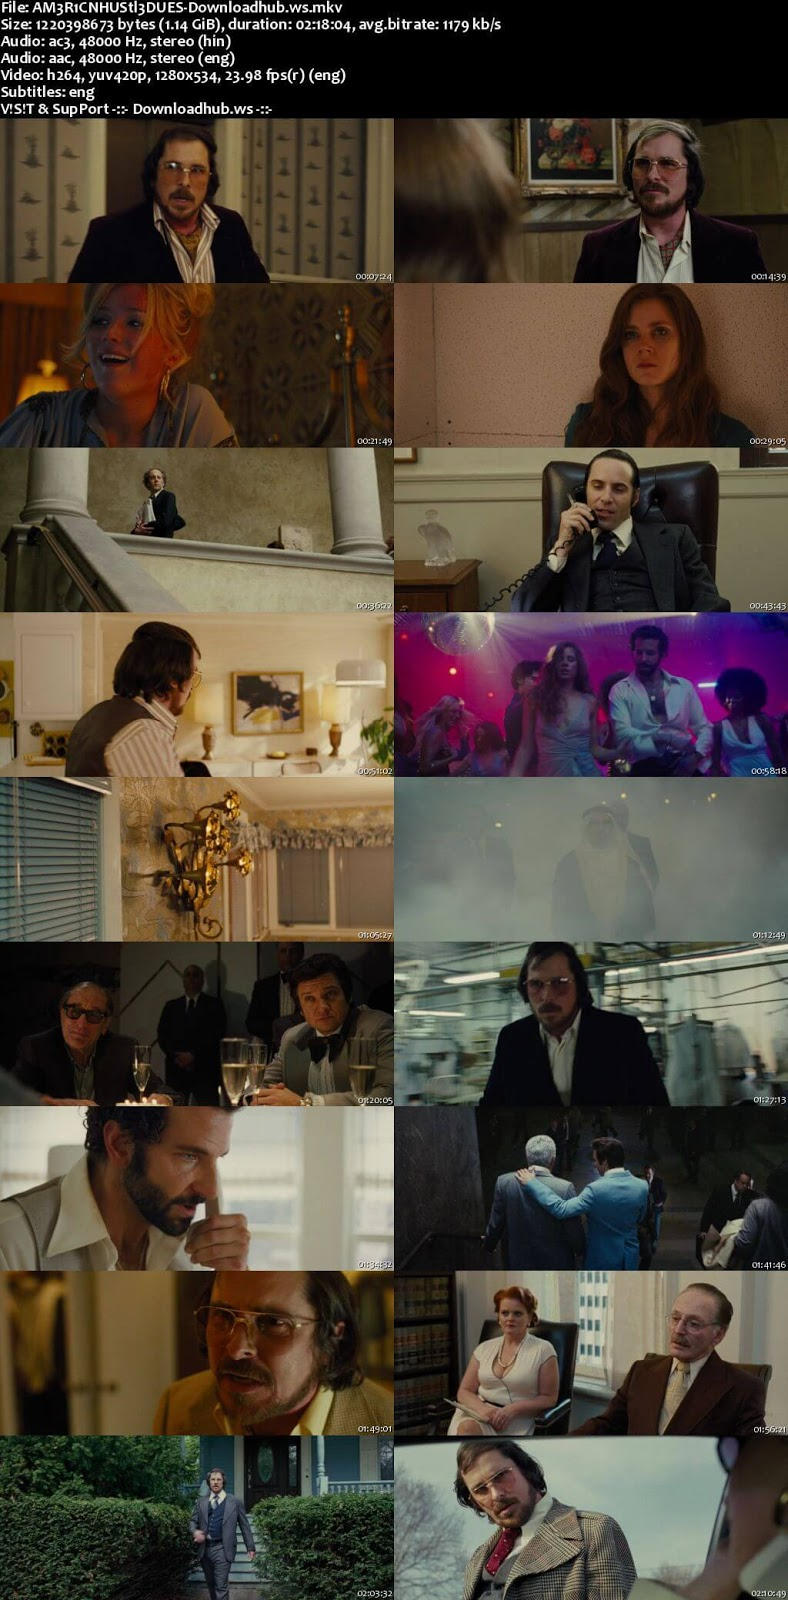 American Hustle 2013 Hindi Dual Audio 720p BluRay Free Download